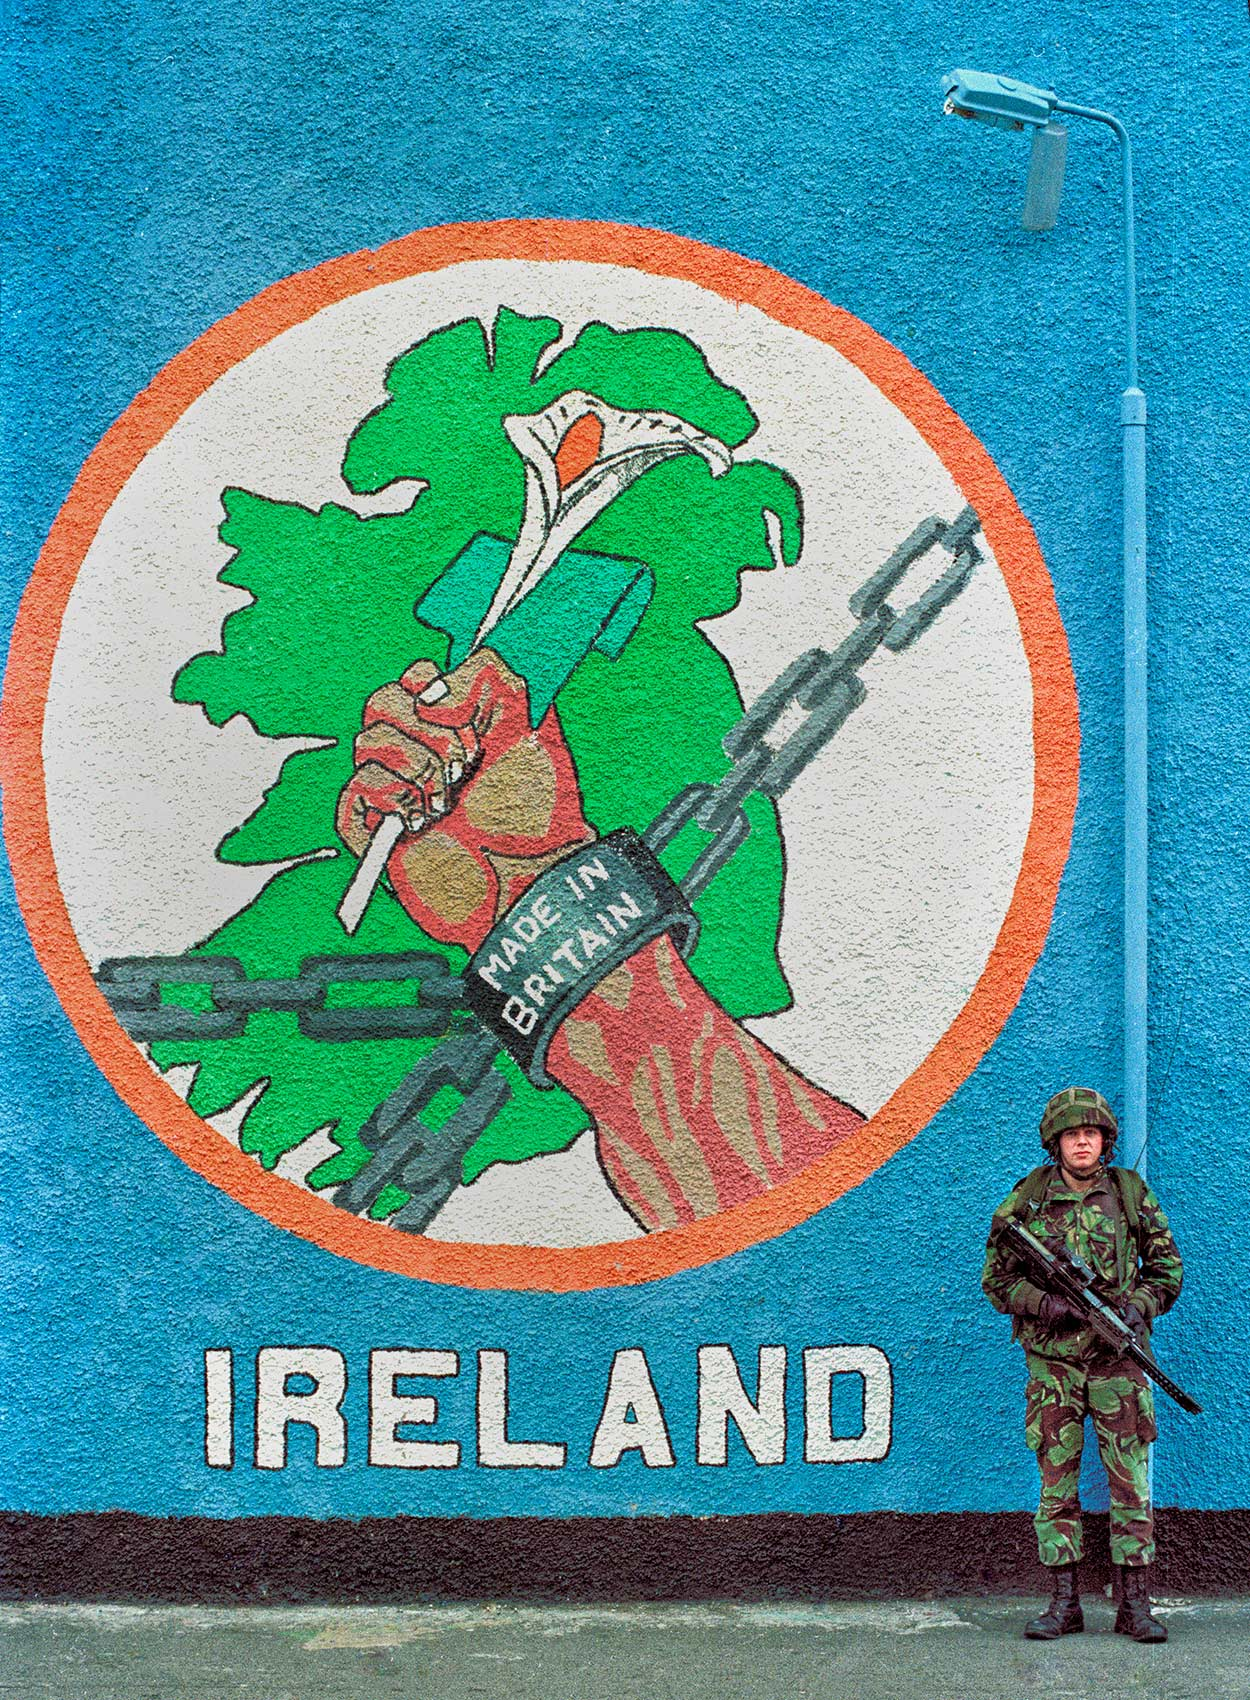 a-british-soldier-stands-guard-in-front-of-a-painted-mural-that-reads-made-in-britain-in-catholic-west-belfast